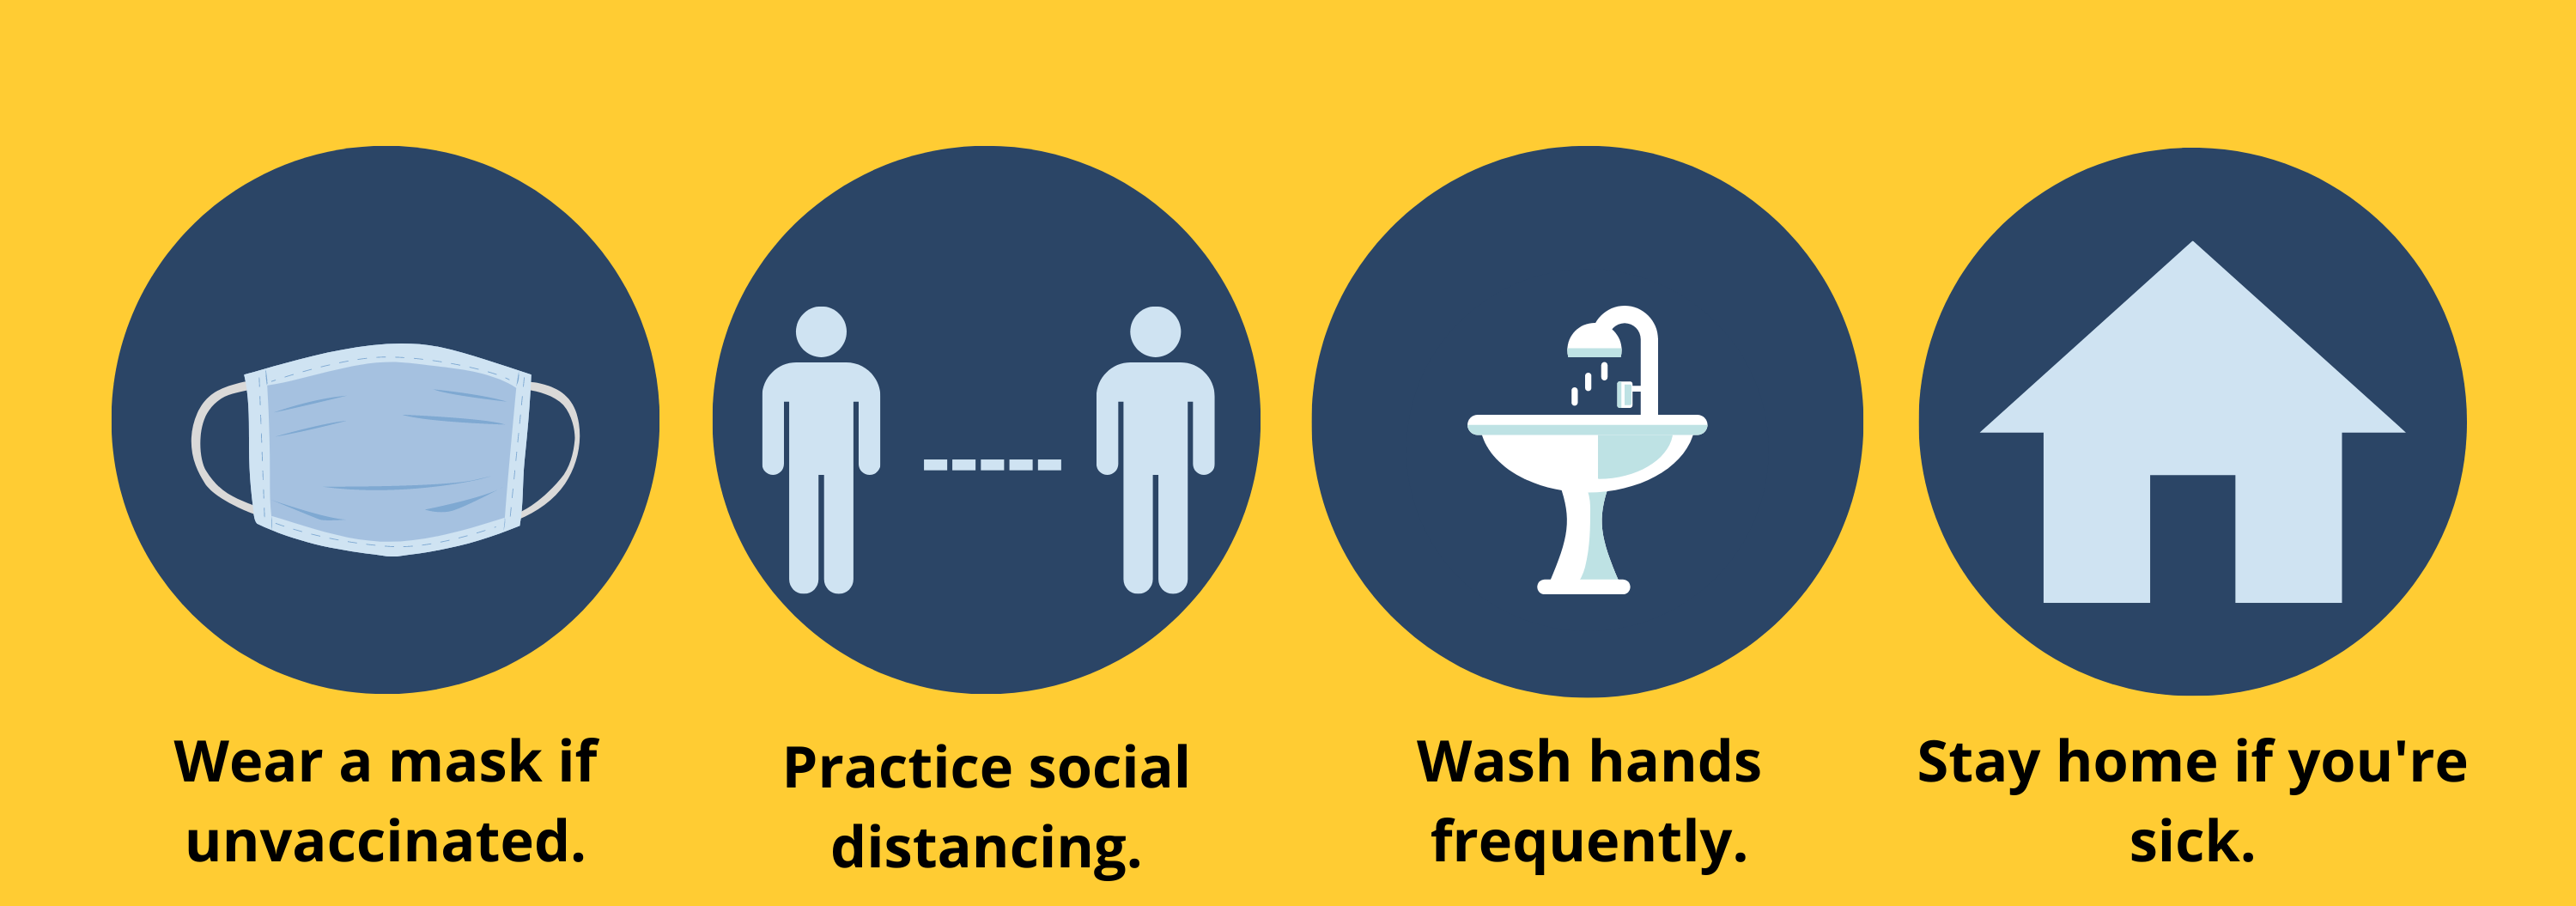 Wear a mask if unvaccinated. Practice social distancing. Wash hands frequently. Stay home if you're sick.